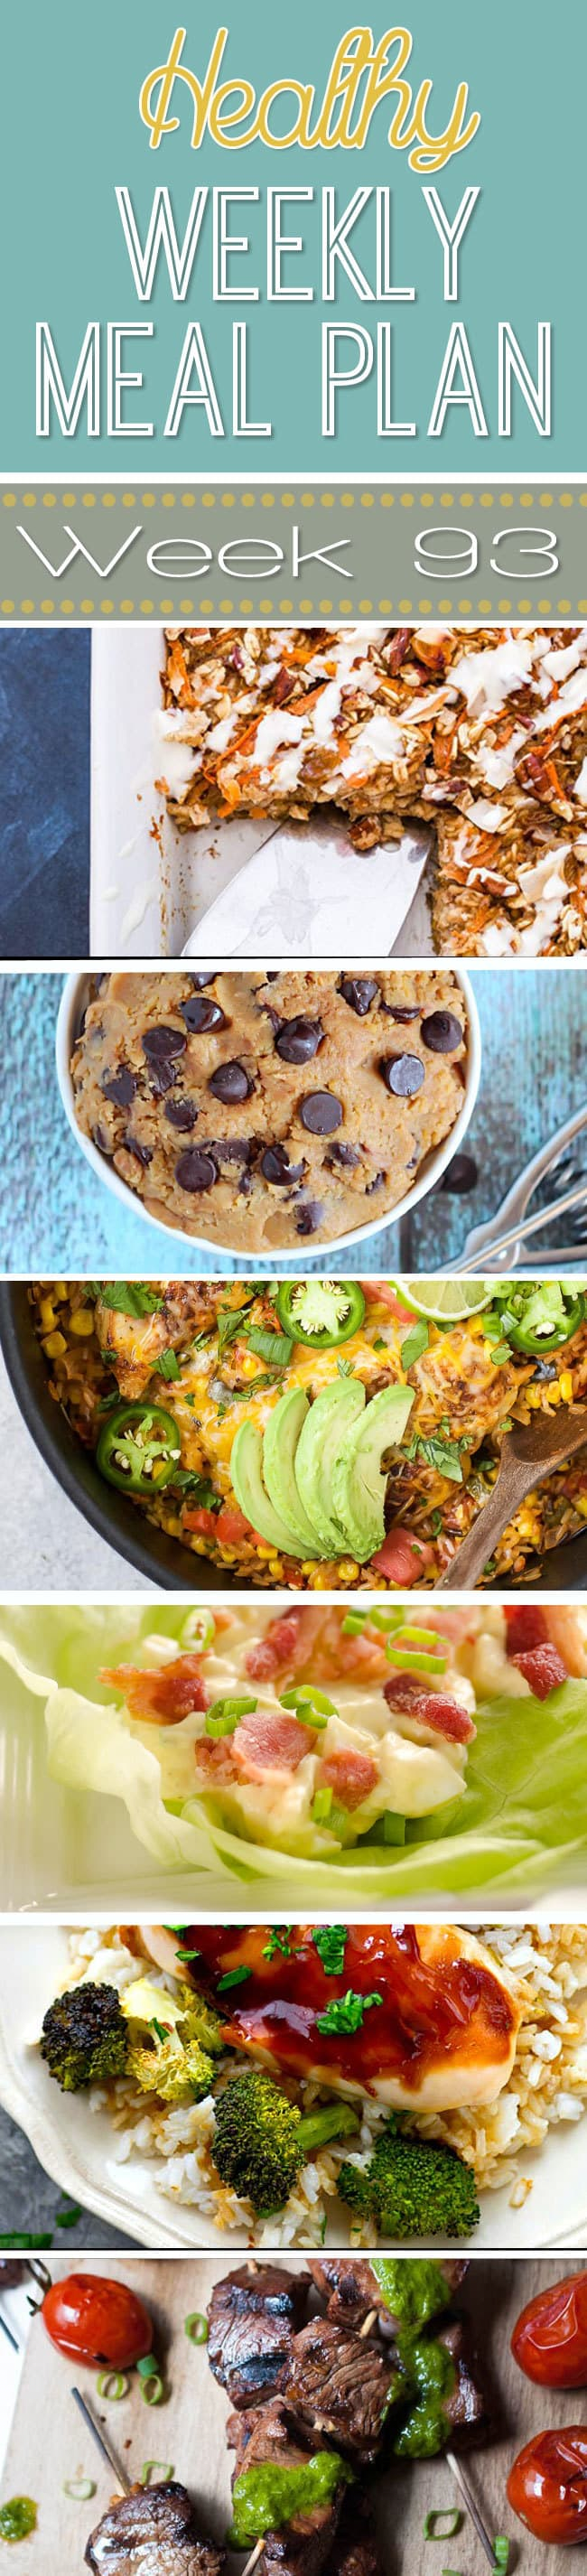 Delicious Recipes in Healthy Weekly Meal Plan Week #93